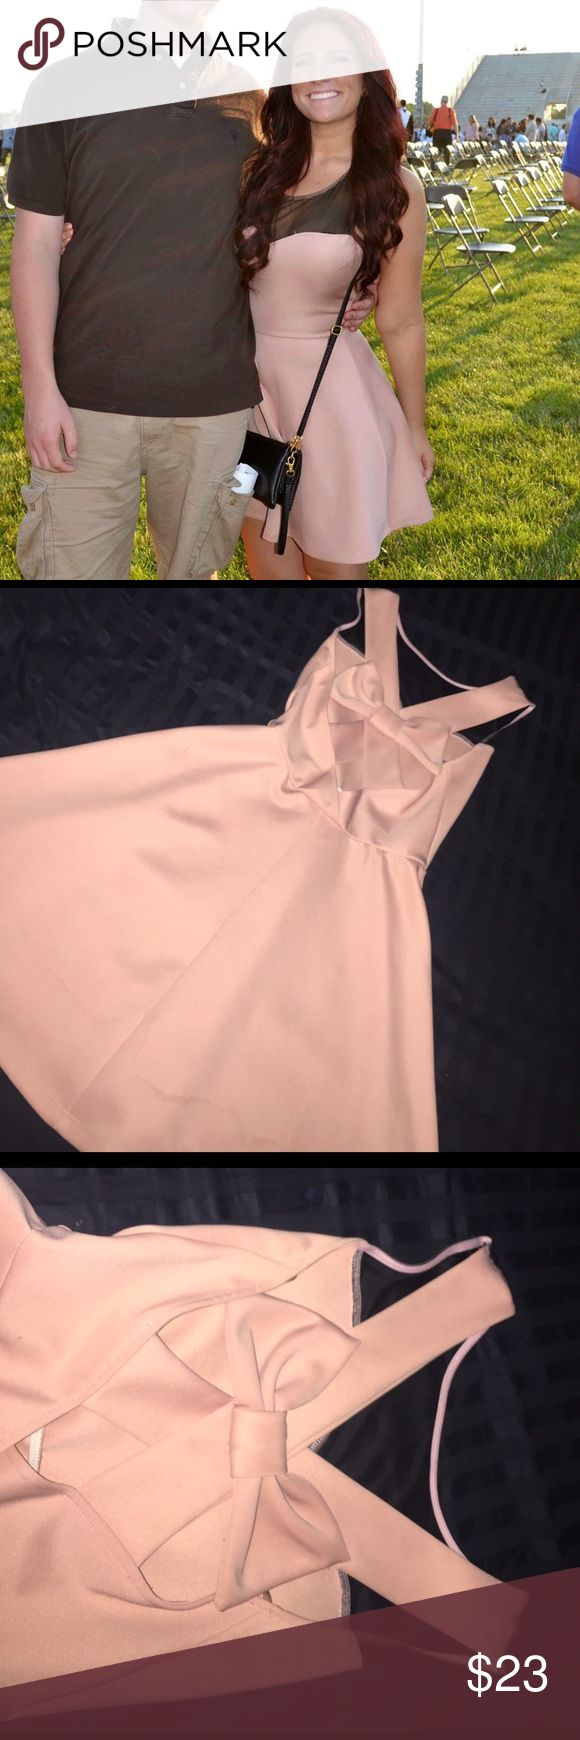 Light pink dress Light pink dress with a cris cross back and bow Dresses